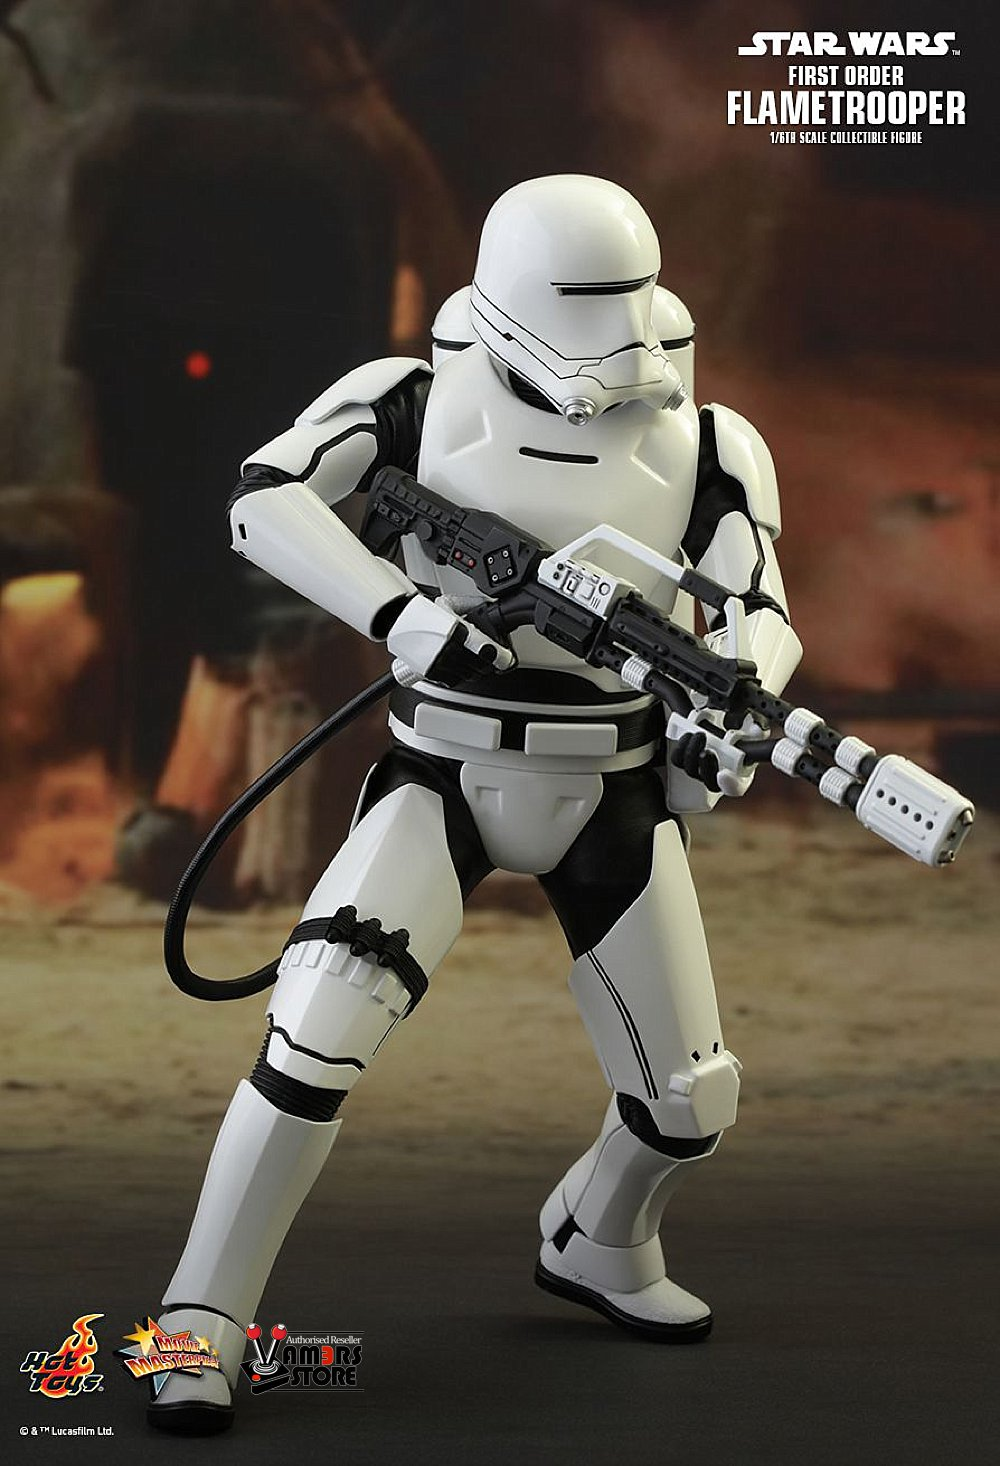 Toys Star Wars : Hot toys star wars first order flametrooper vamers store